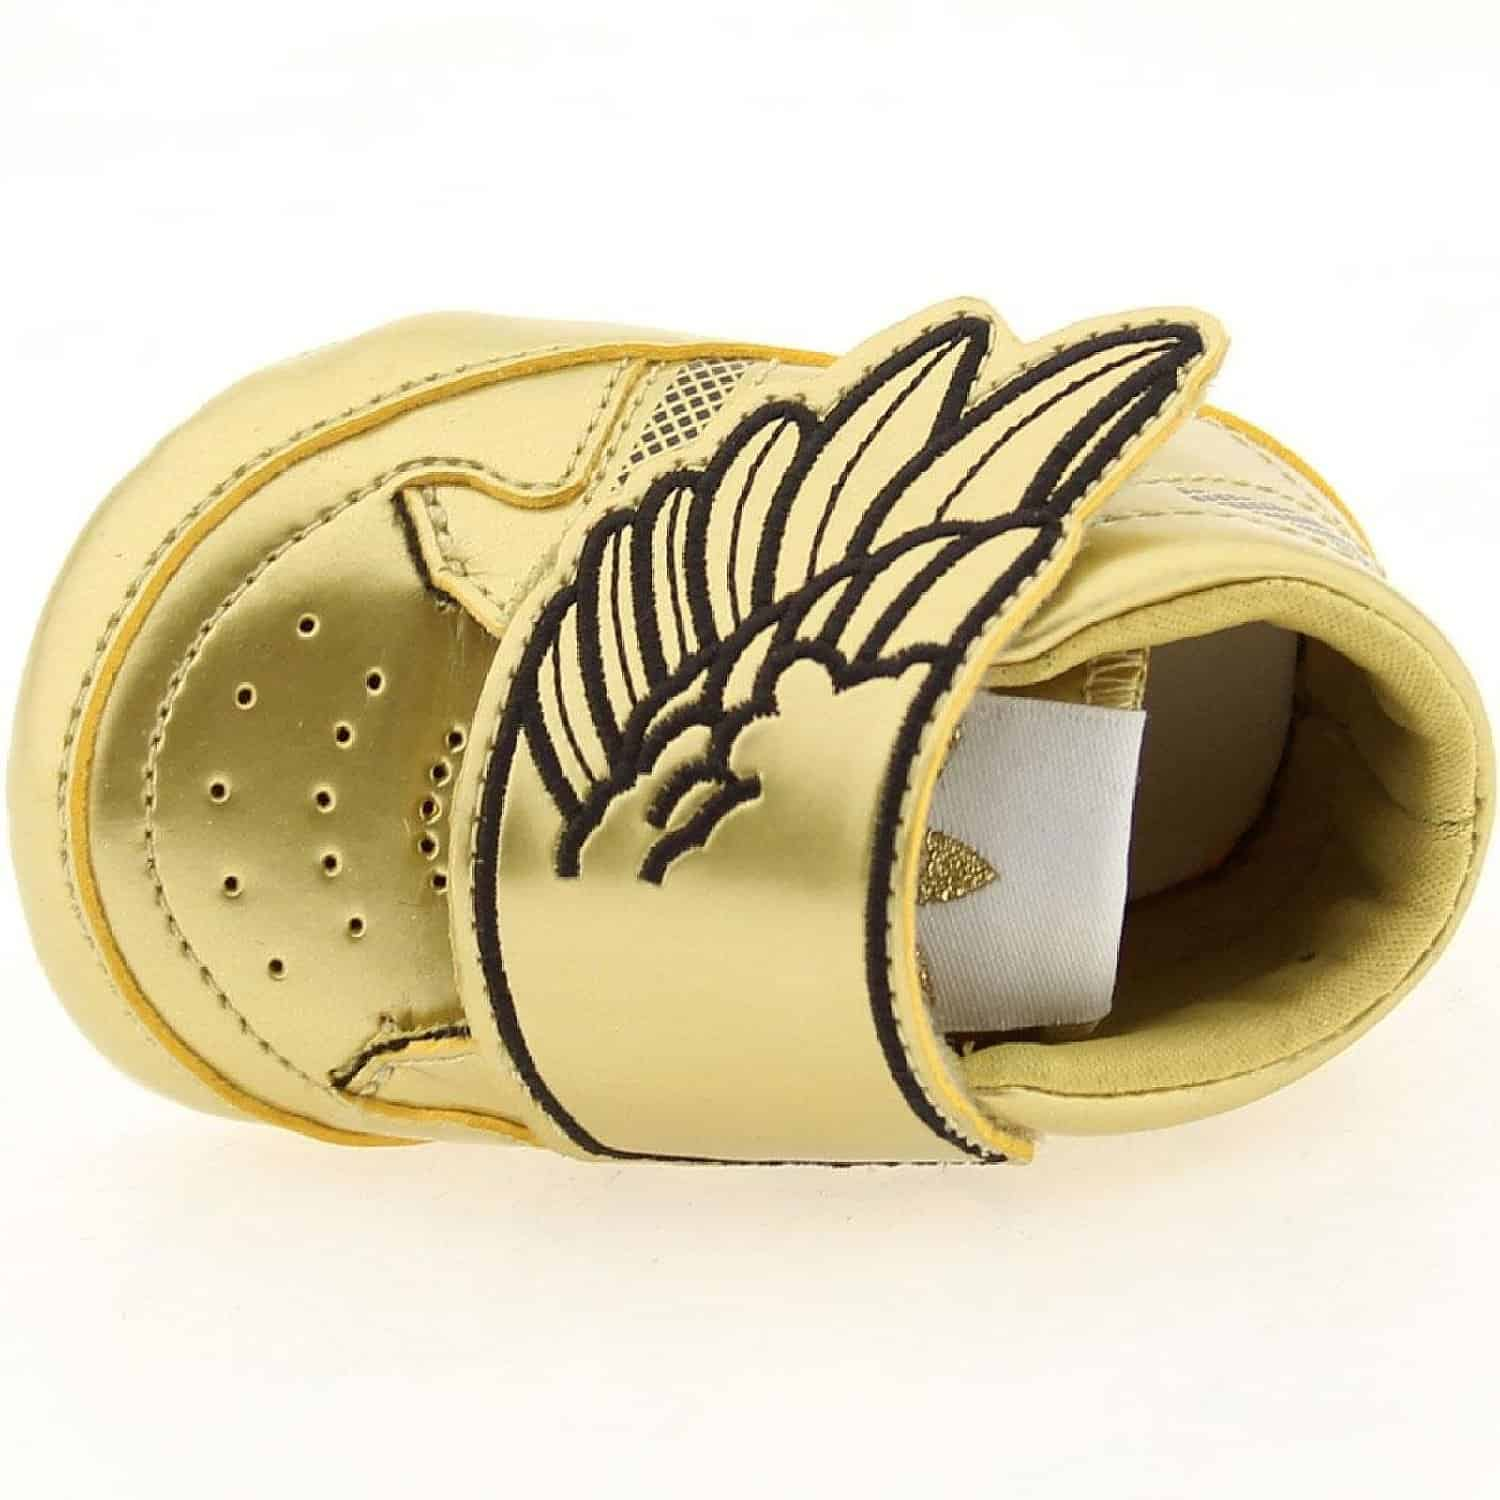 adidas jeremy scott wings cribpack infant shoes. Black Bedroom Furniture Sets. Home Design Ideas